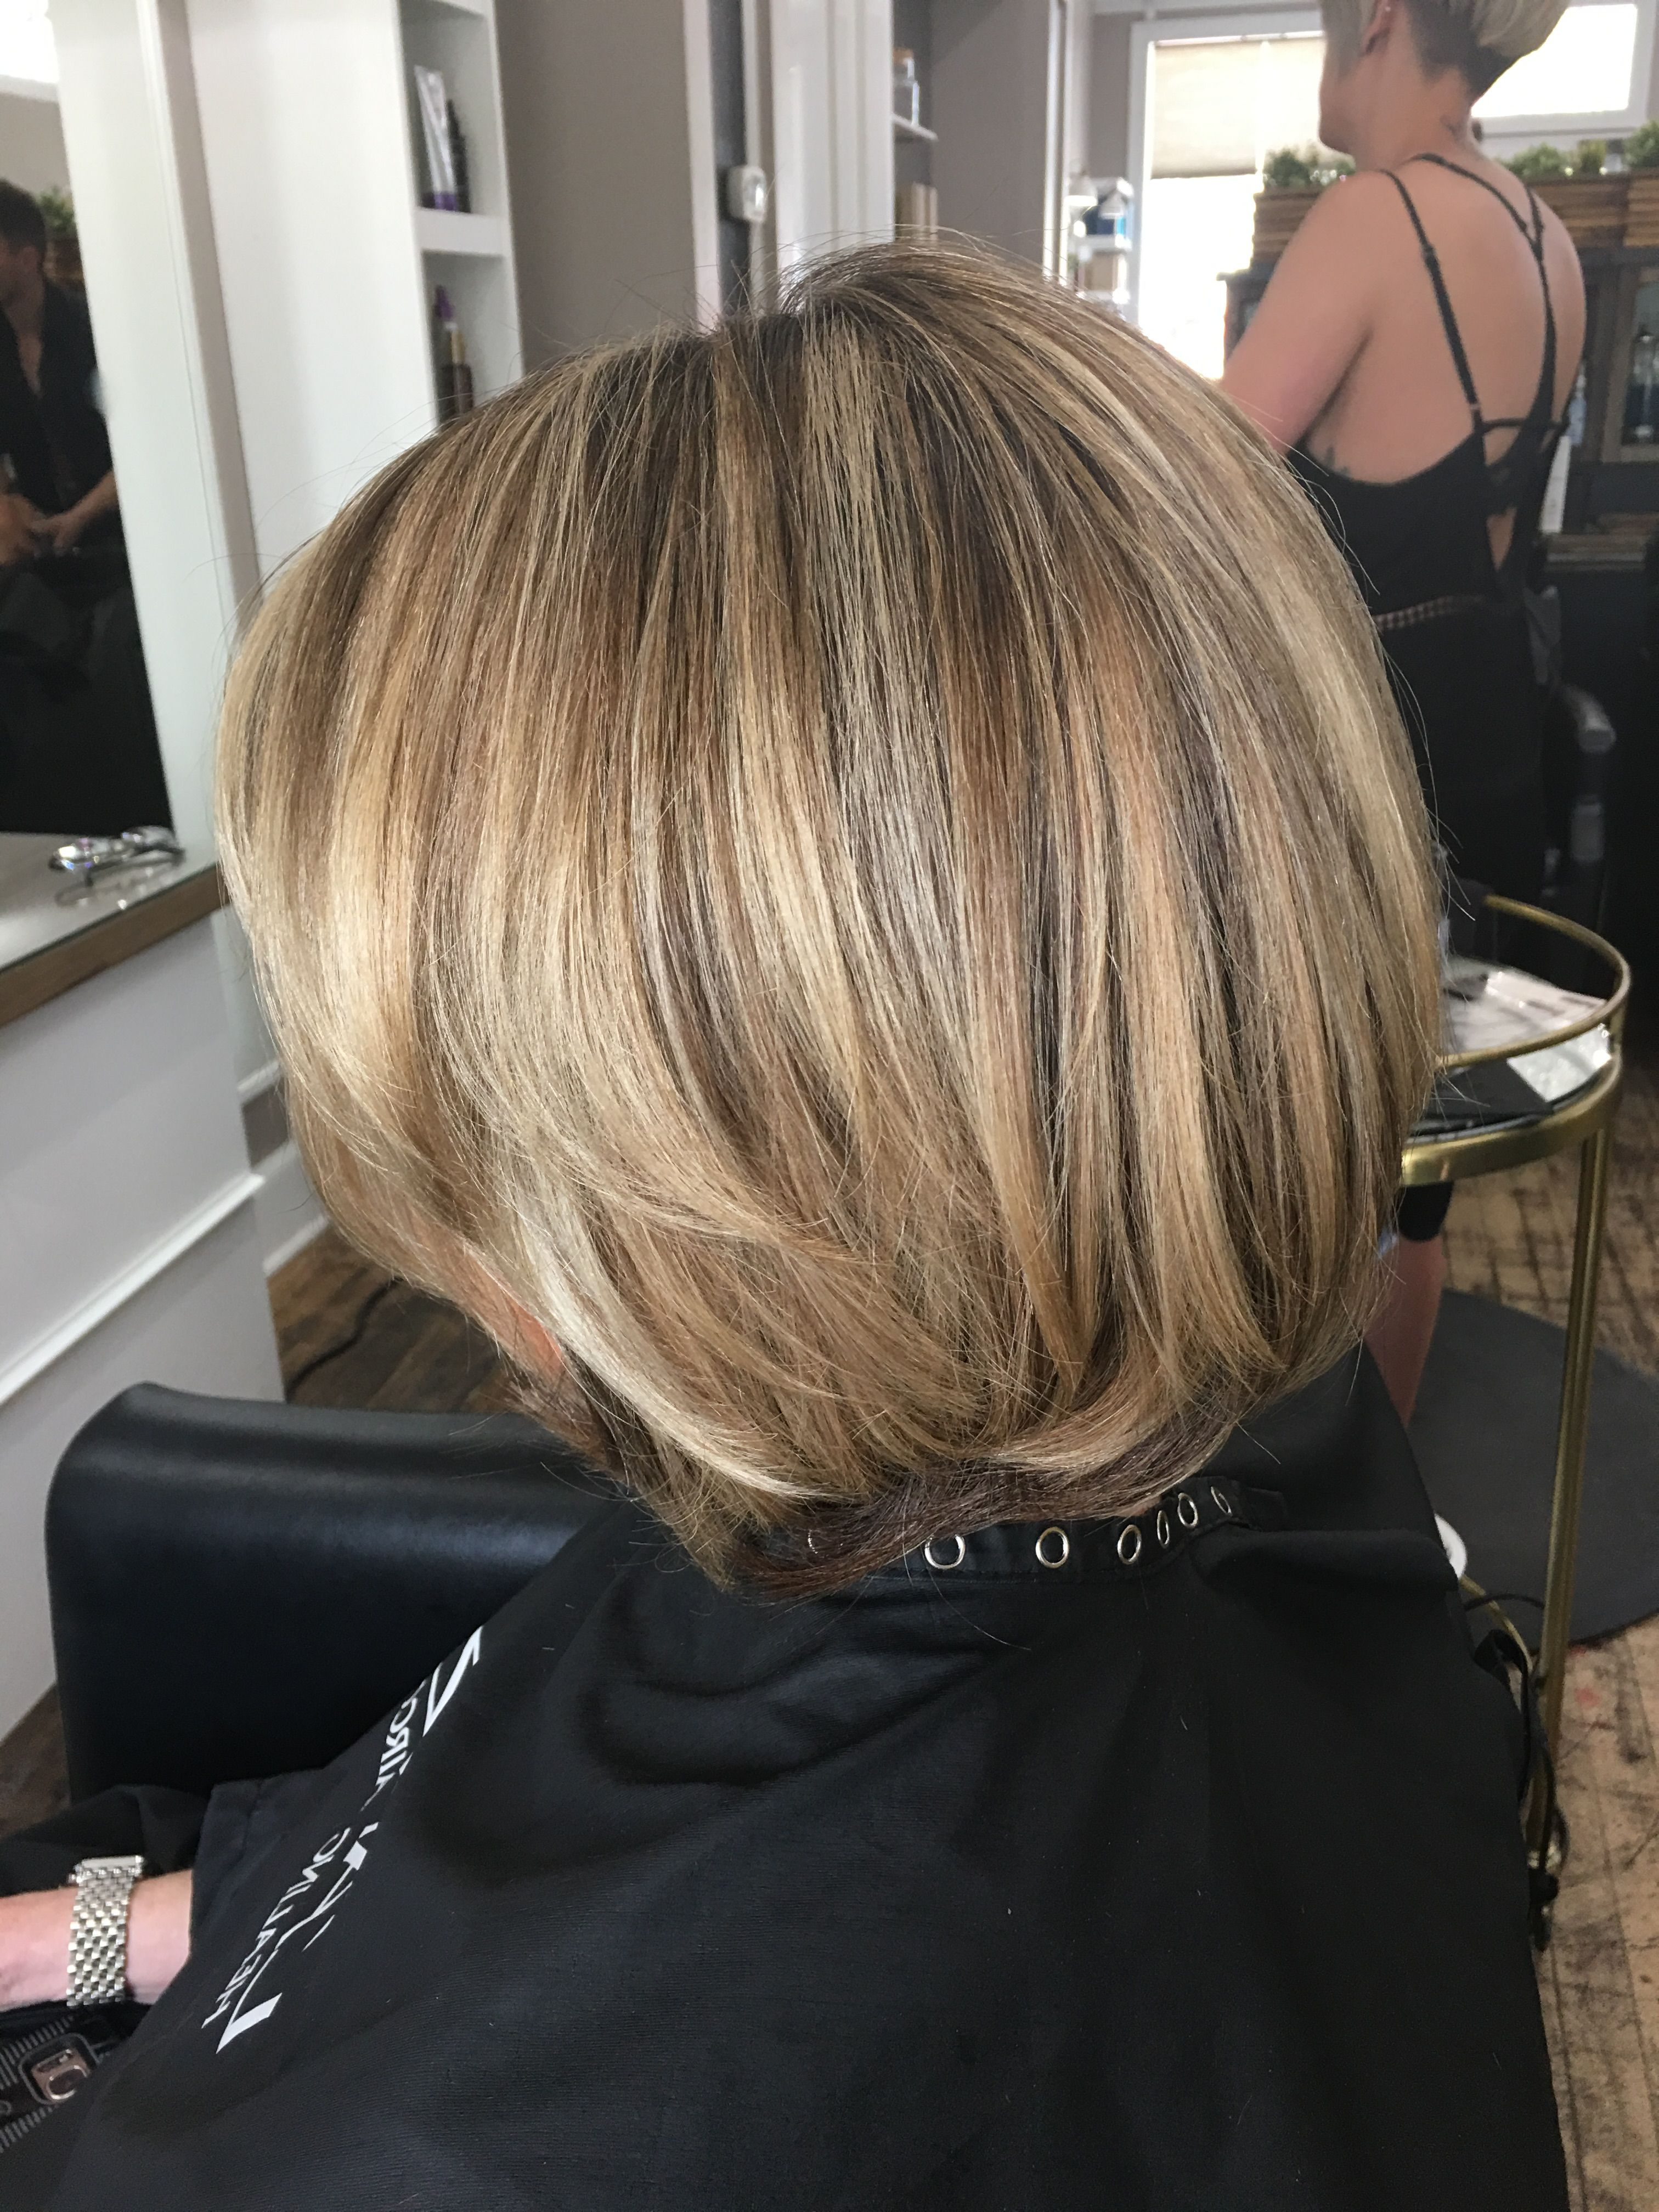 Bronde Bob, Layered Bob, Lob, Blonde Lob, Honey Blonde, Soft Blonde With Regard To Short Crisp Bronde Bob Haircuts (View 9 of 20)